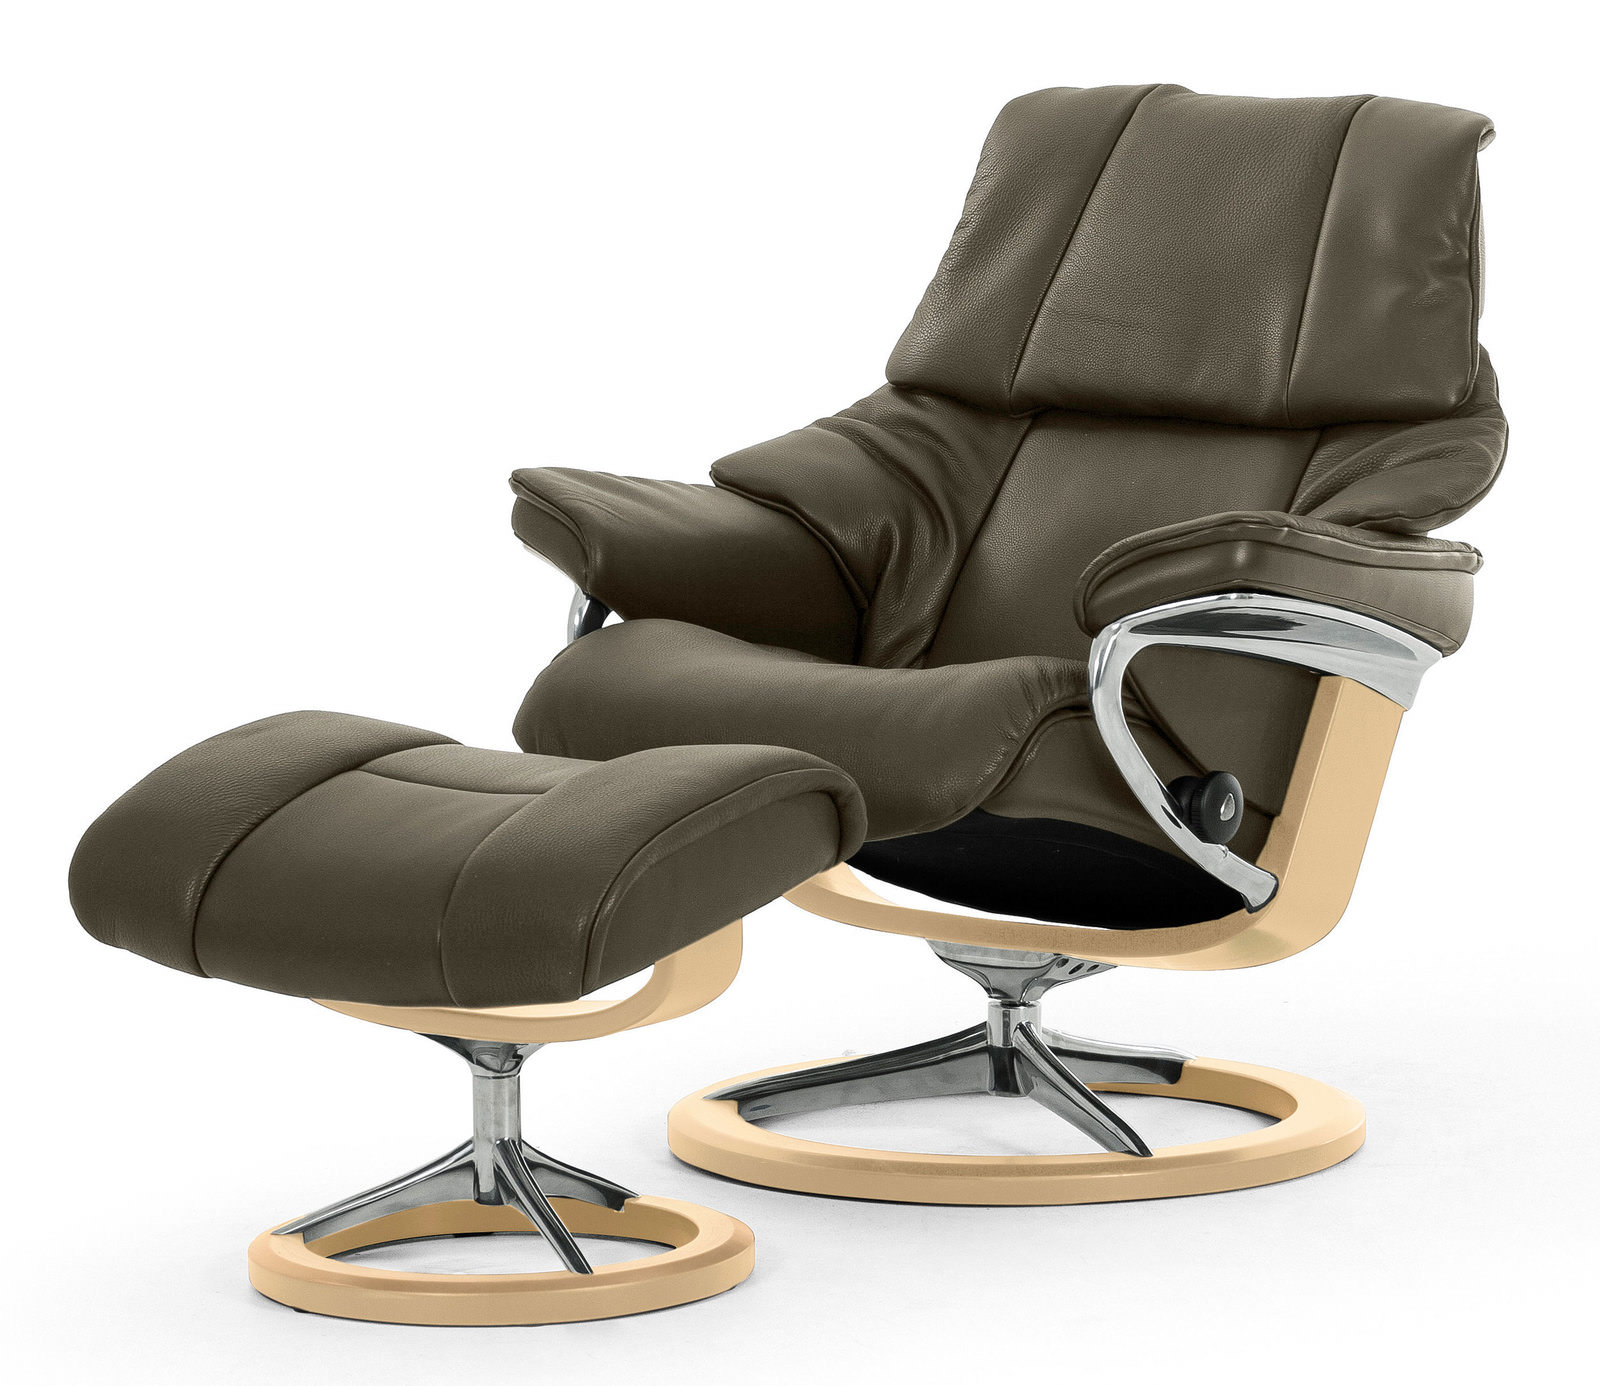 Stressless Sessel Günstig Stressless Sessel